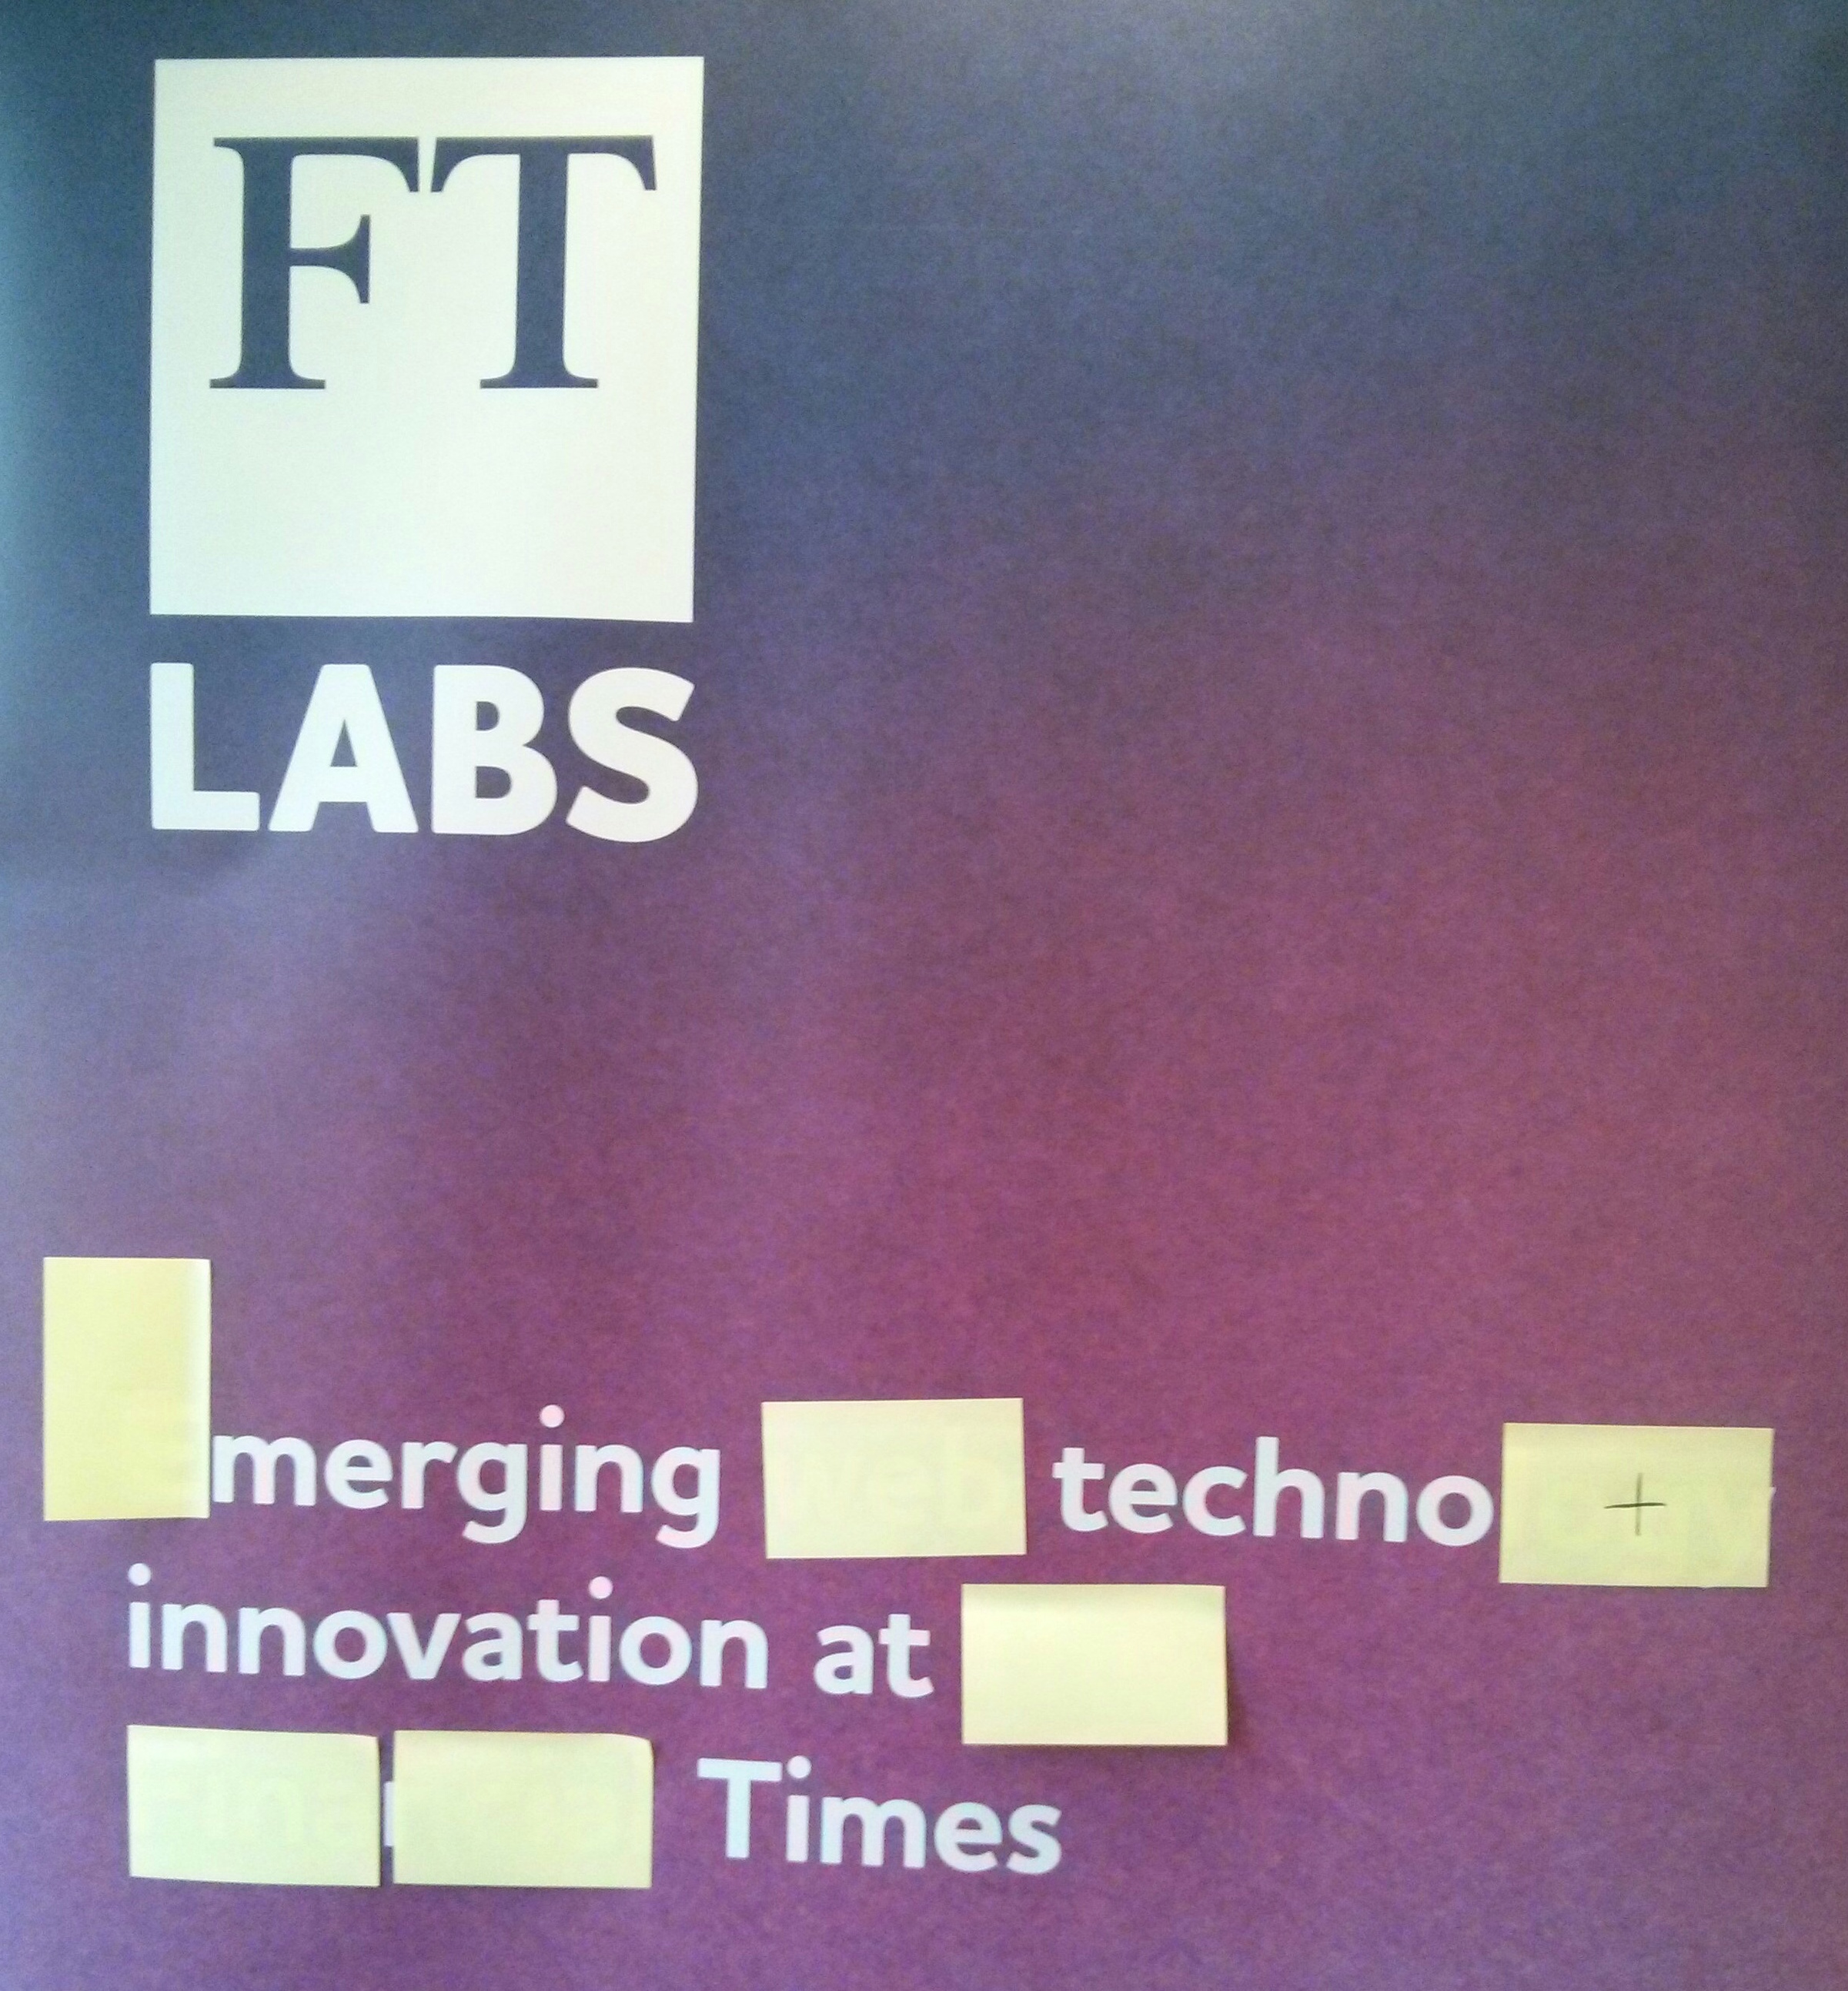 Trade show poster: FT Labs, Emerging web technology innovation at the Financial Times.